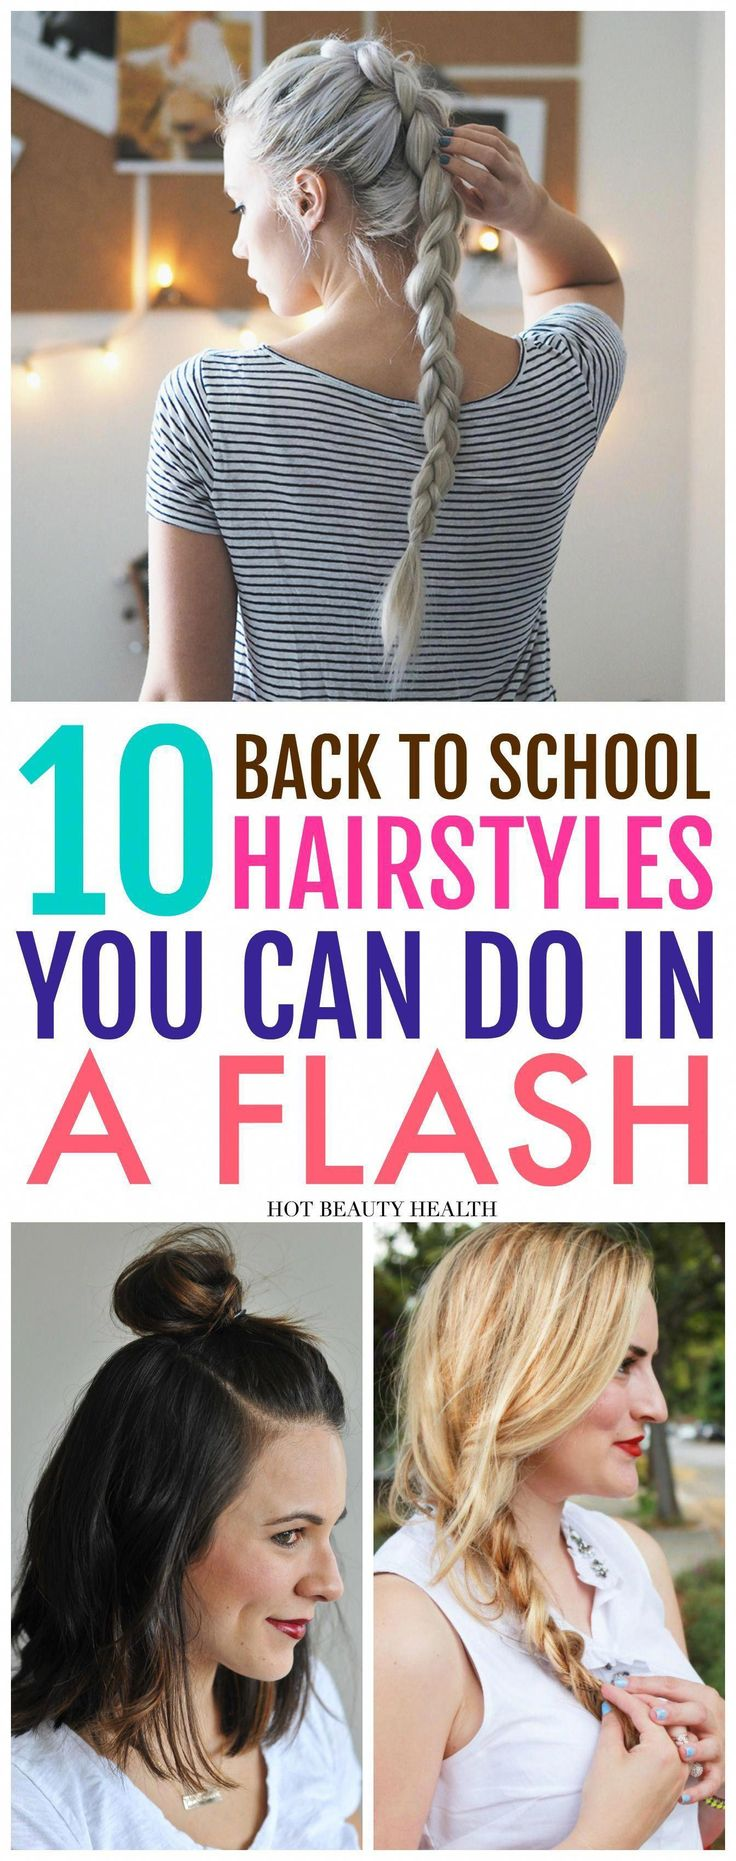 Contemporary Hairstyles | Women Hair Cut Short | Haircuts For Girls With Short H… – I Want Hair Like This